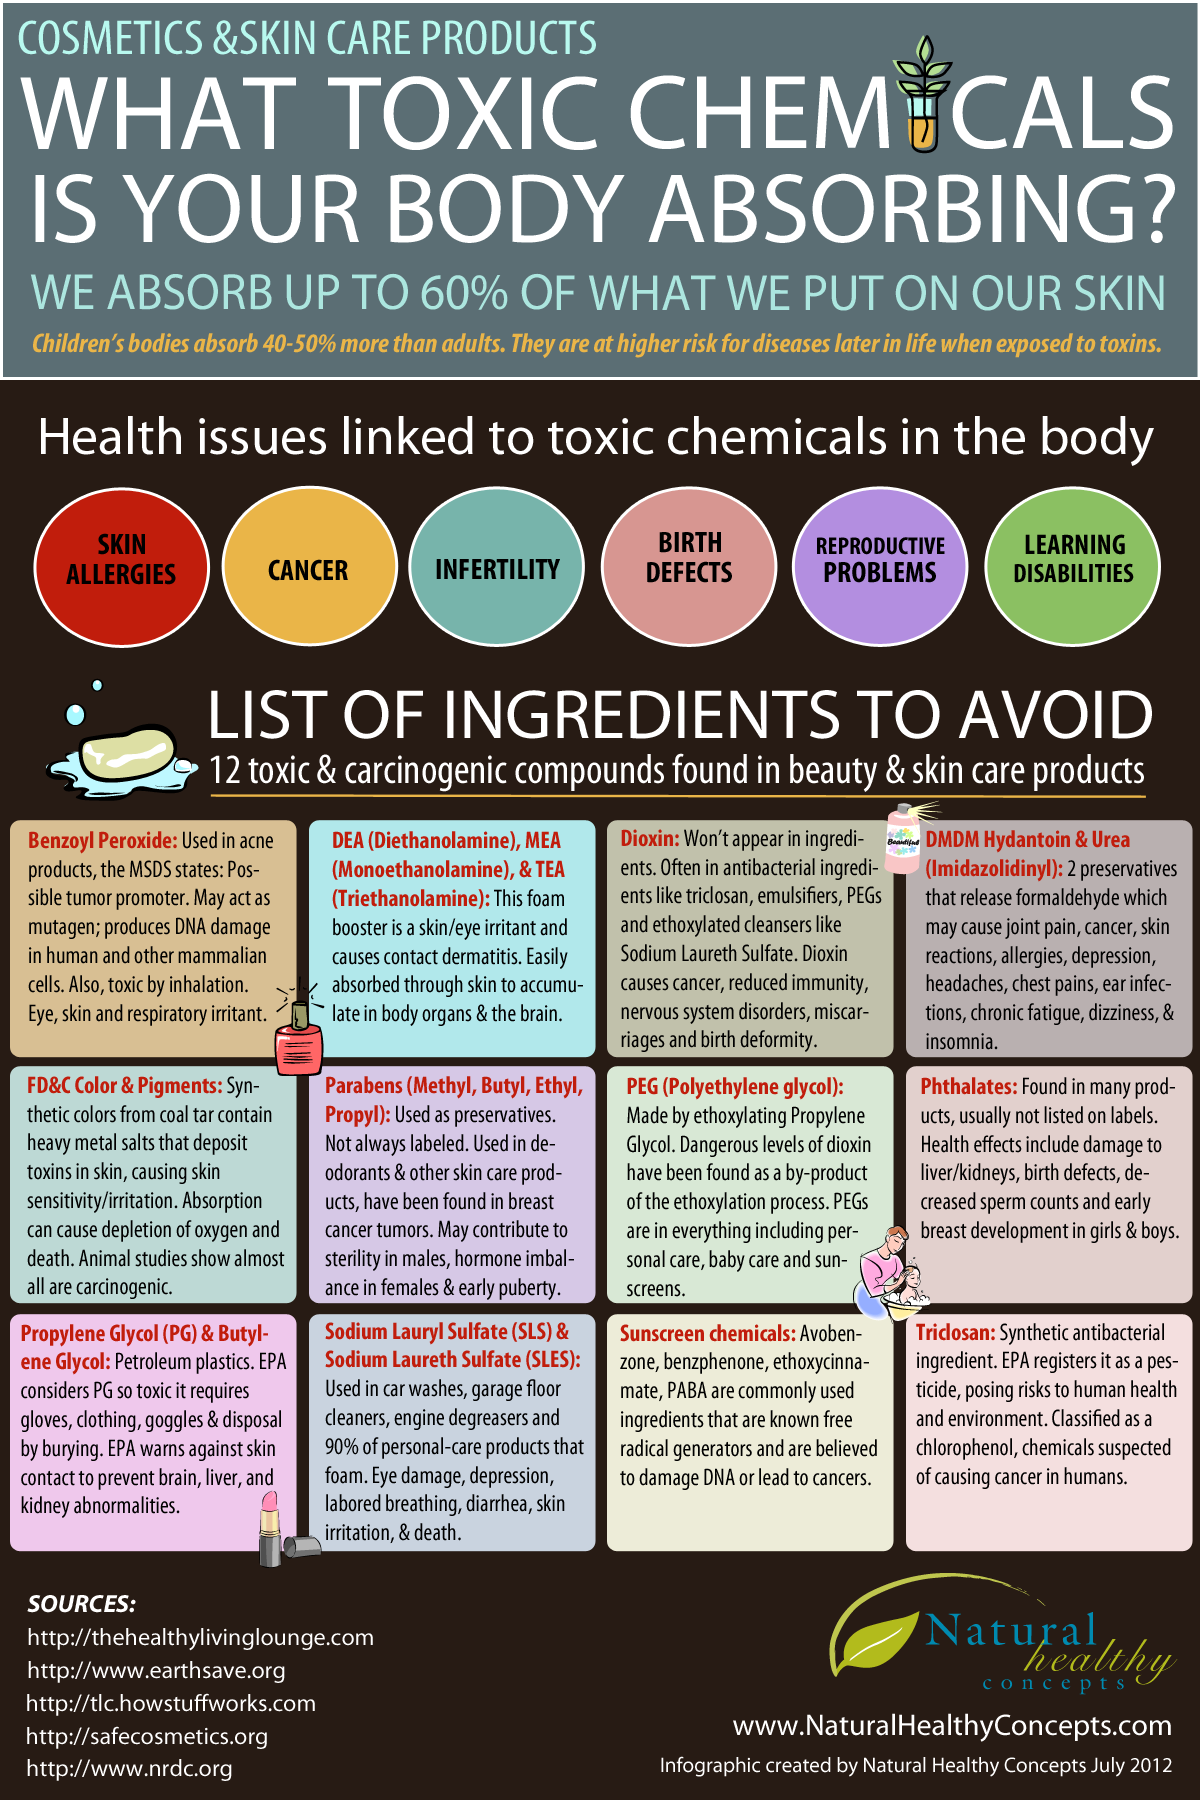 Toxic Chemicals To Avoid In Body Skin Care Products Always Read The Labels Even If It Says It S Organic Or Infographic Health Health And Nutrition Health